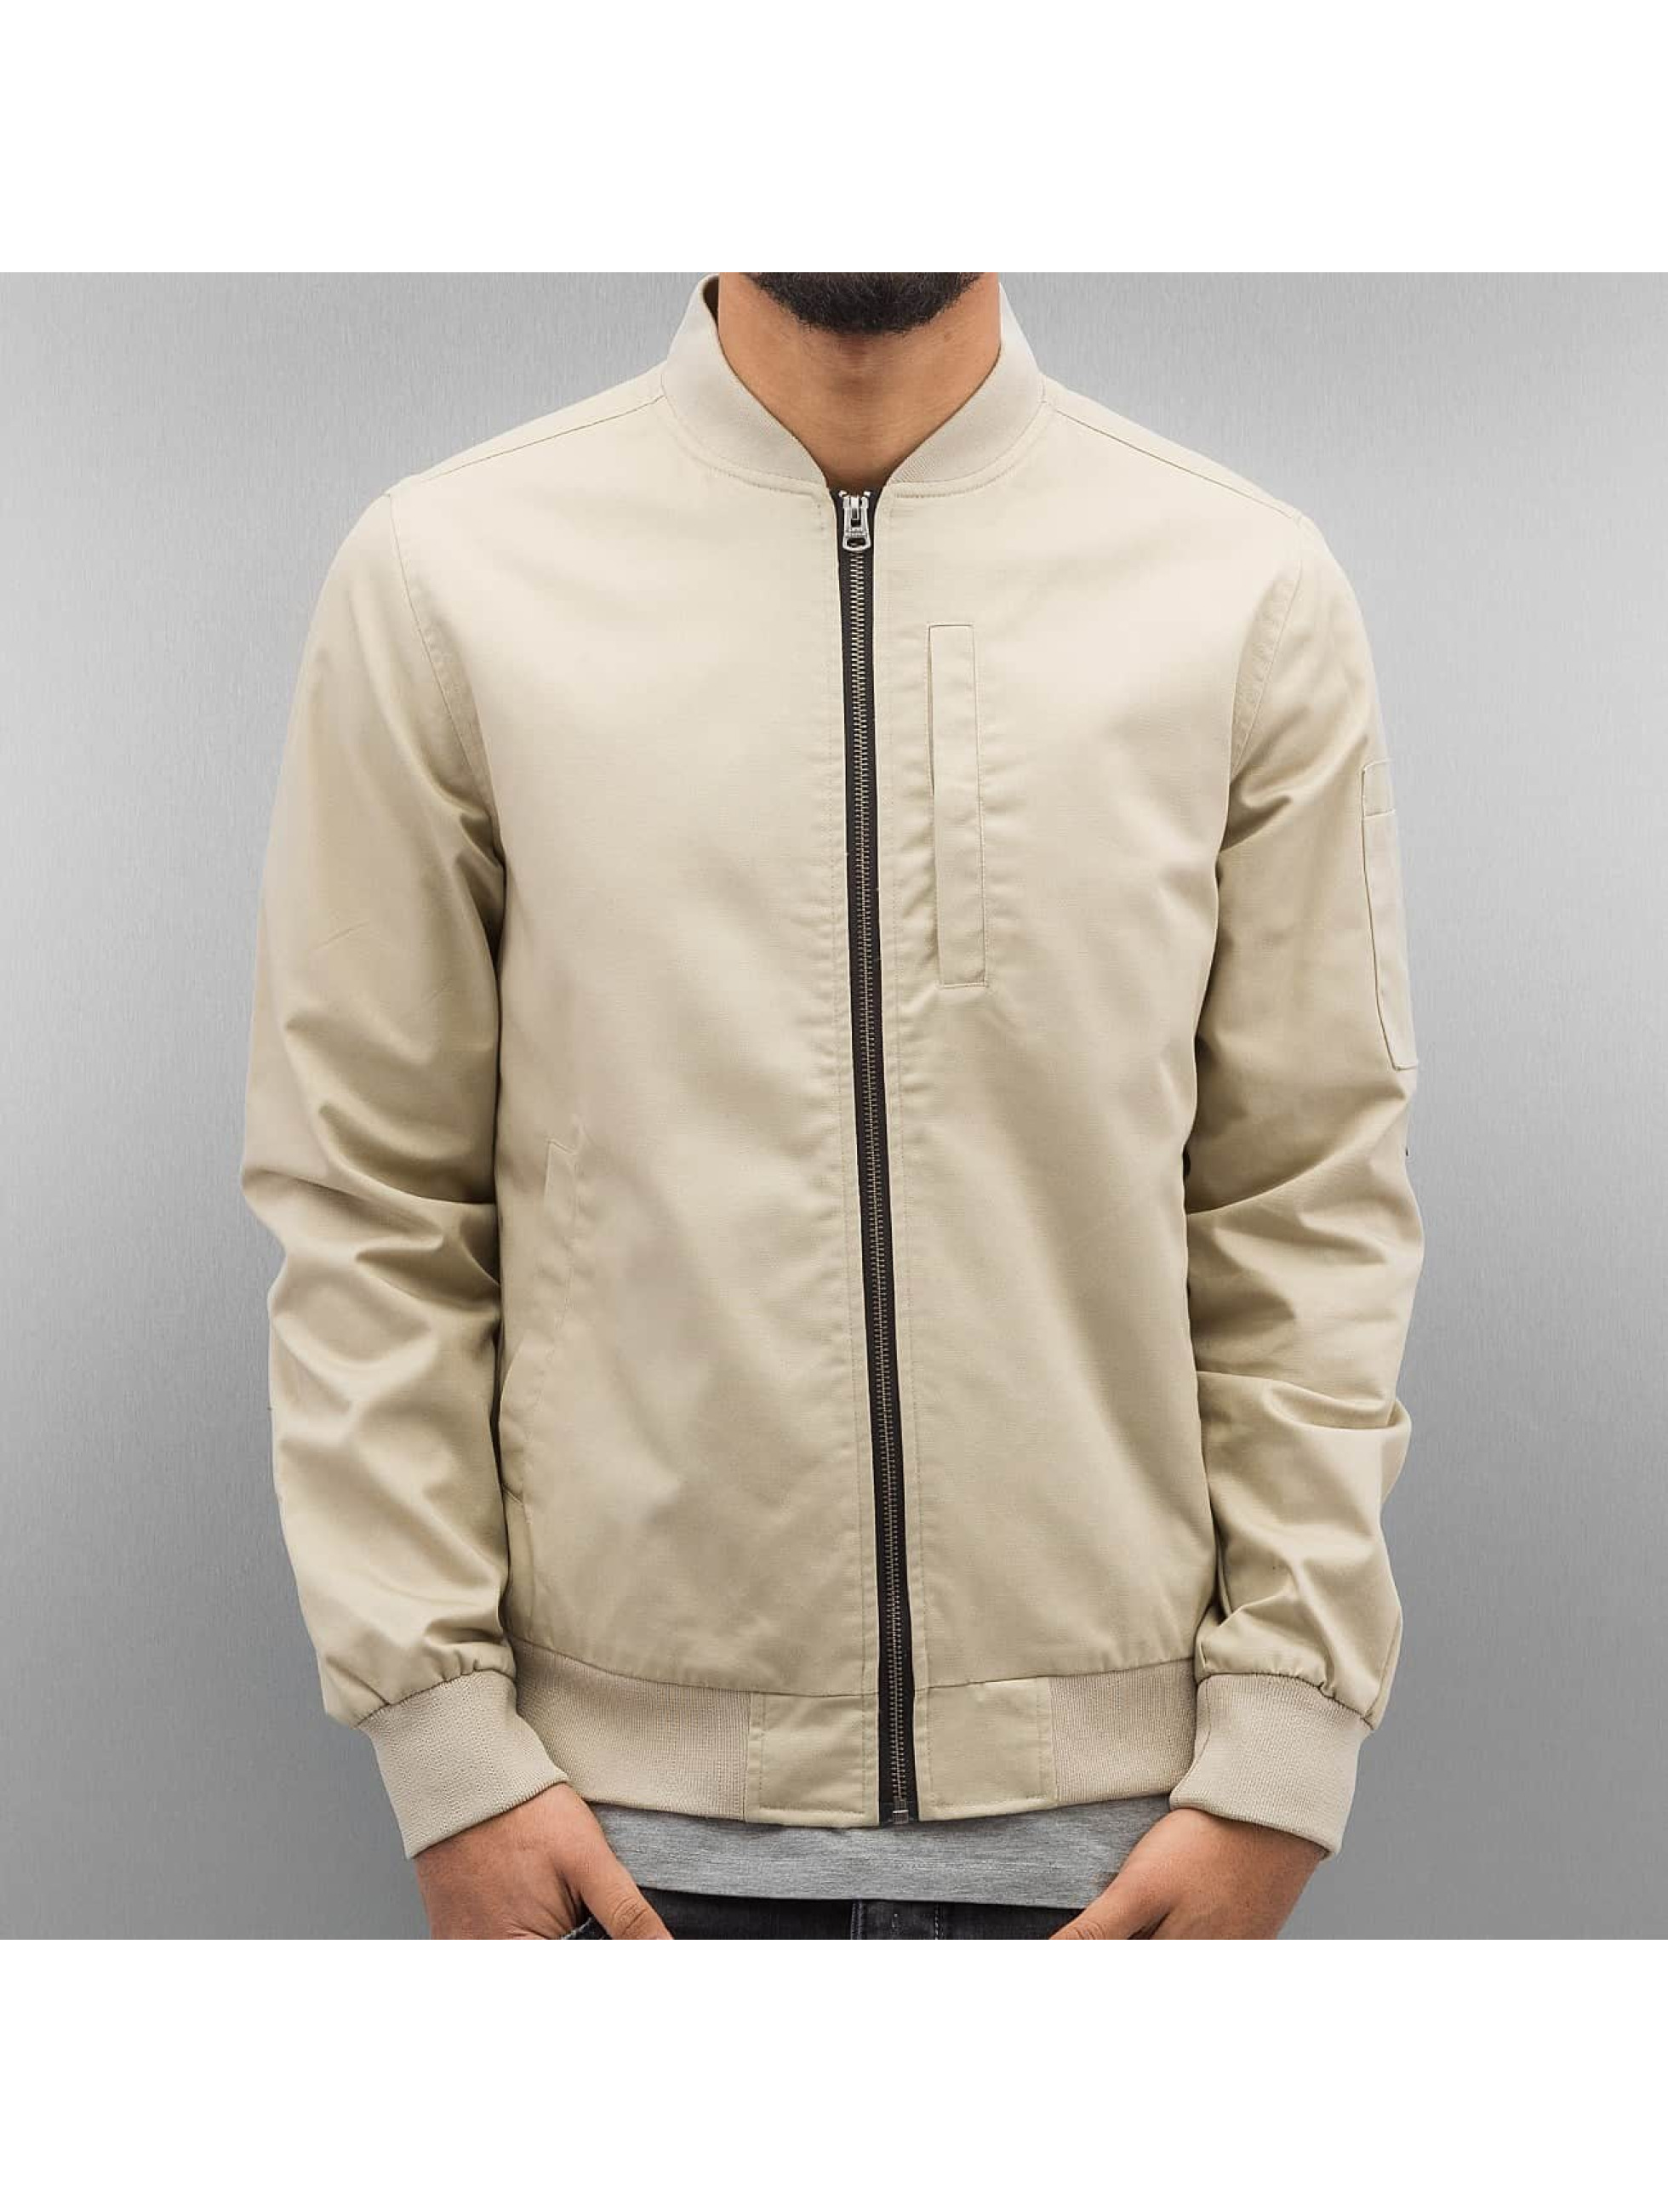 SHINE Original Bomber jacket Rex beige